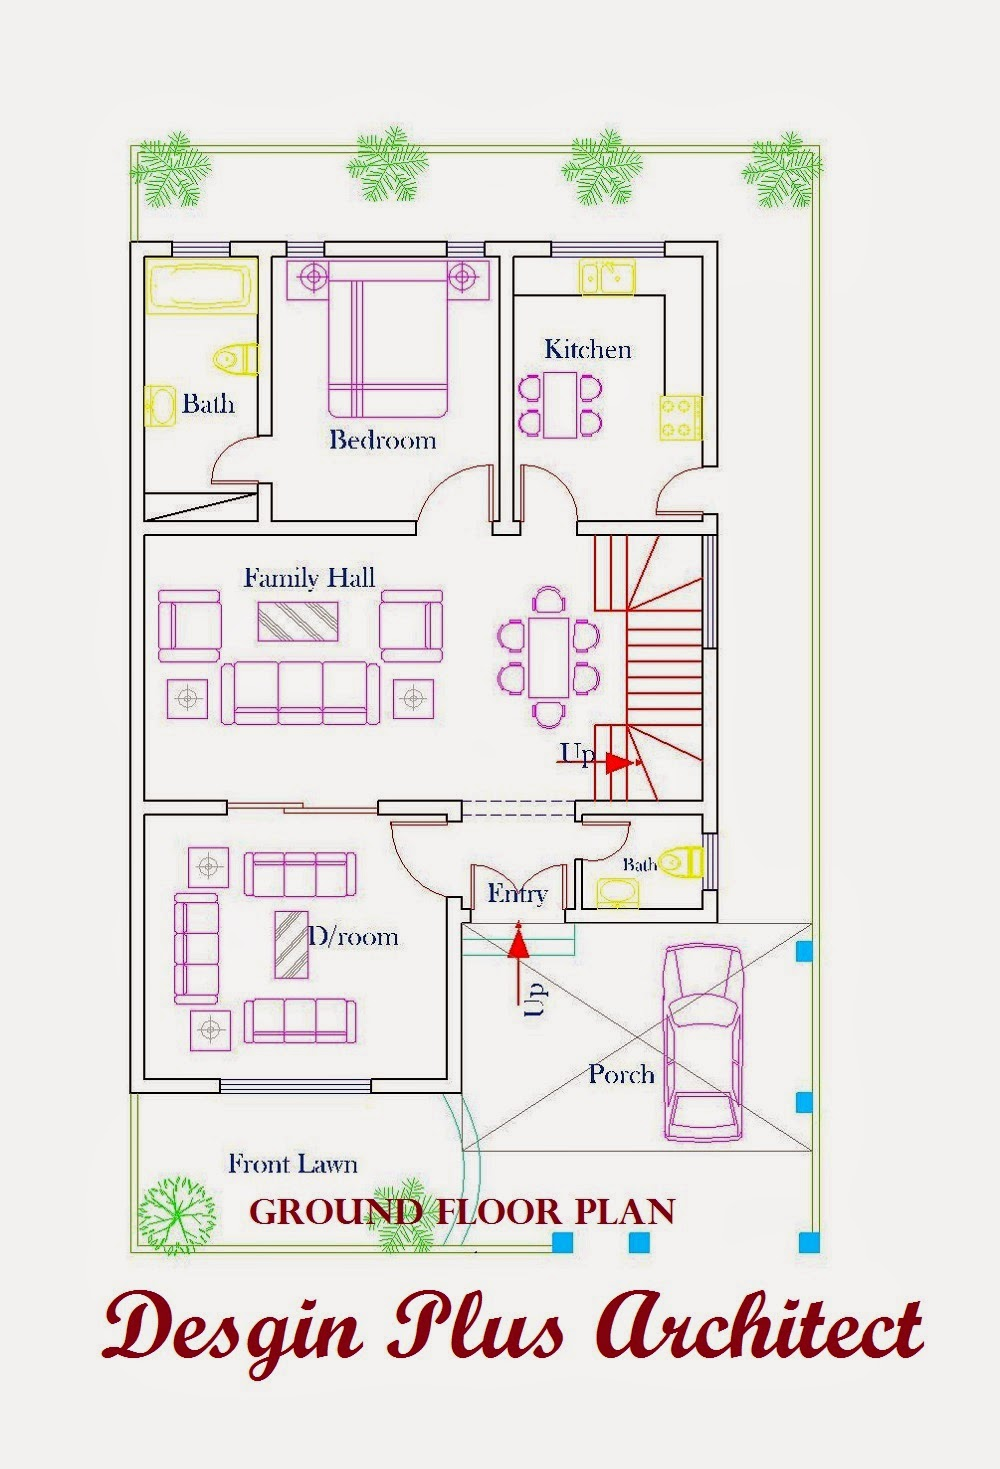 Home Plans In Pakistan  Home Decor  Architect Designer   d Home Plan d home plans